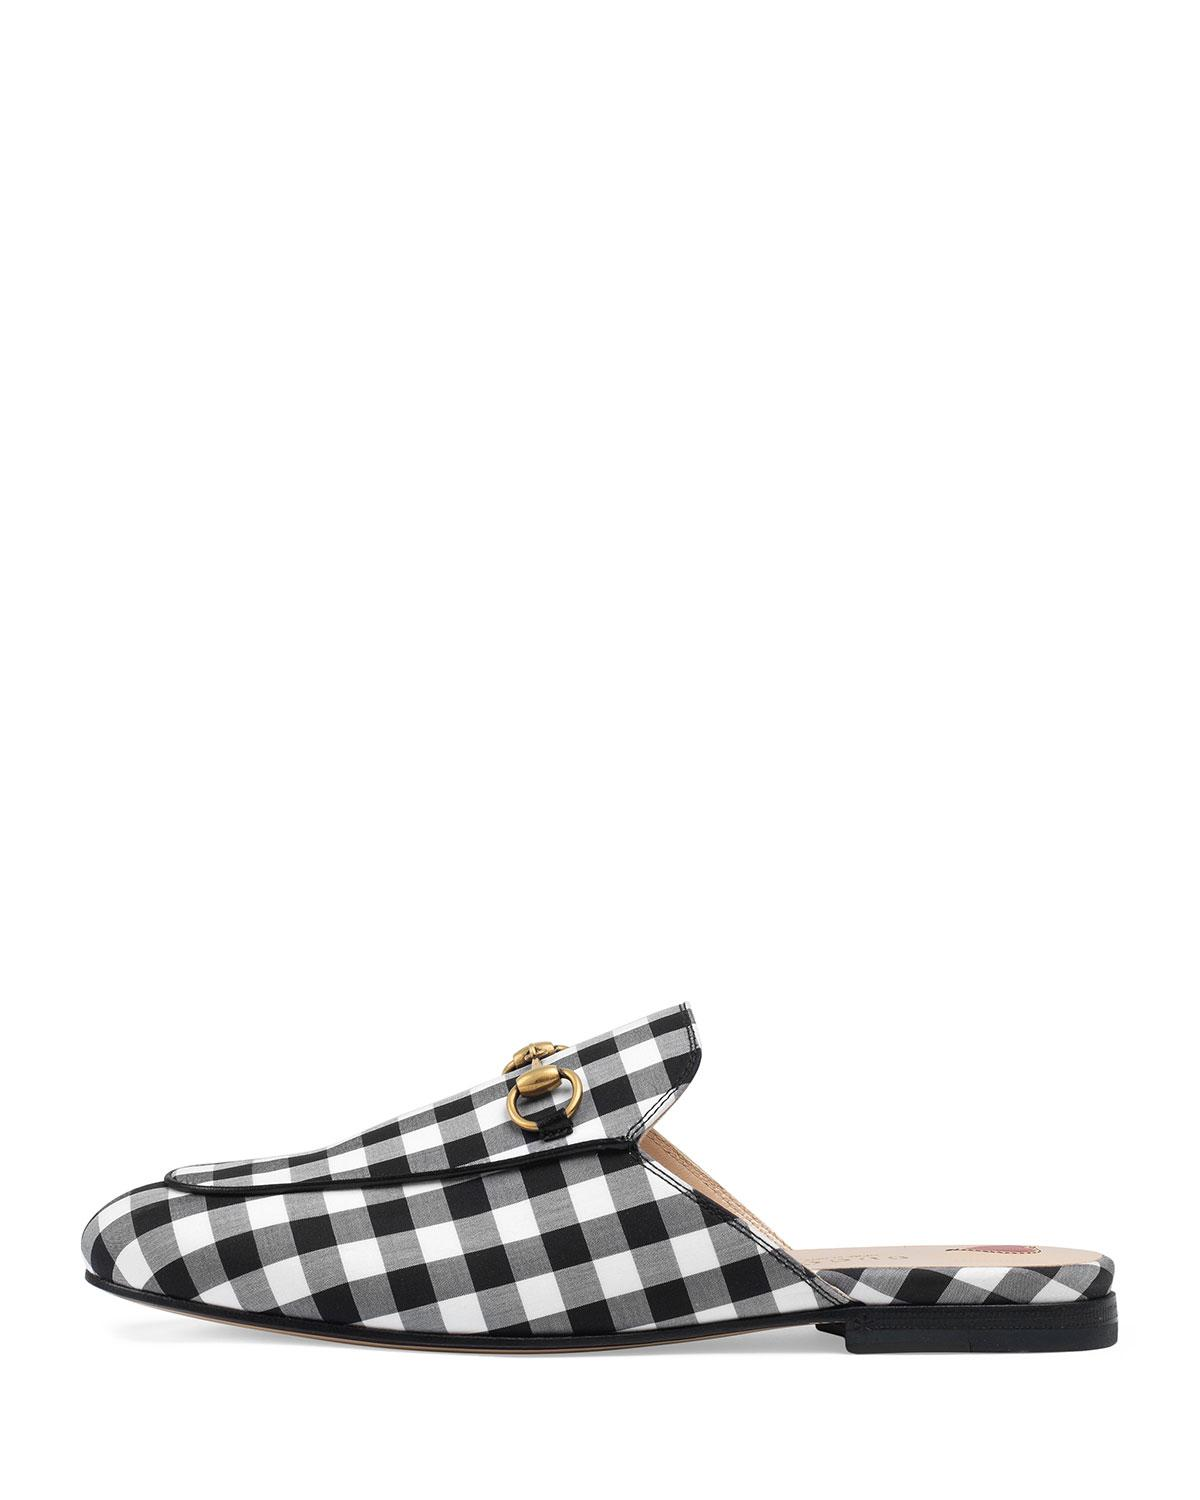 669983150ba Lyst - Gucci Gingham Mule Slide in Black